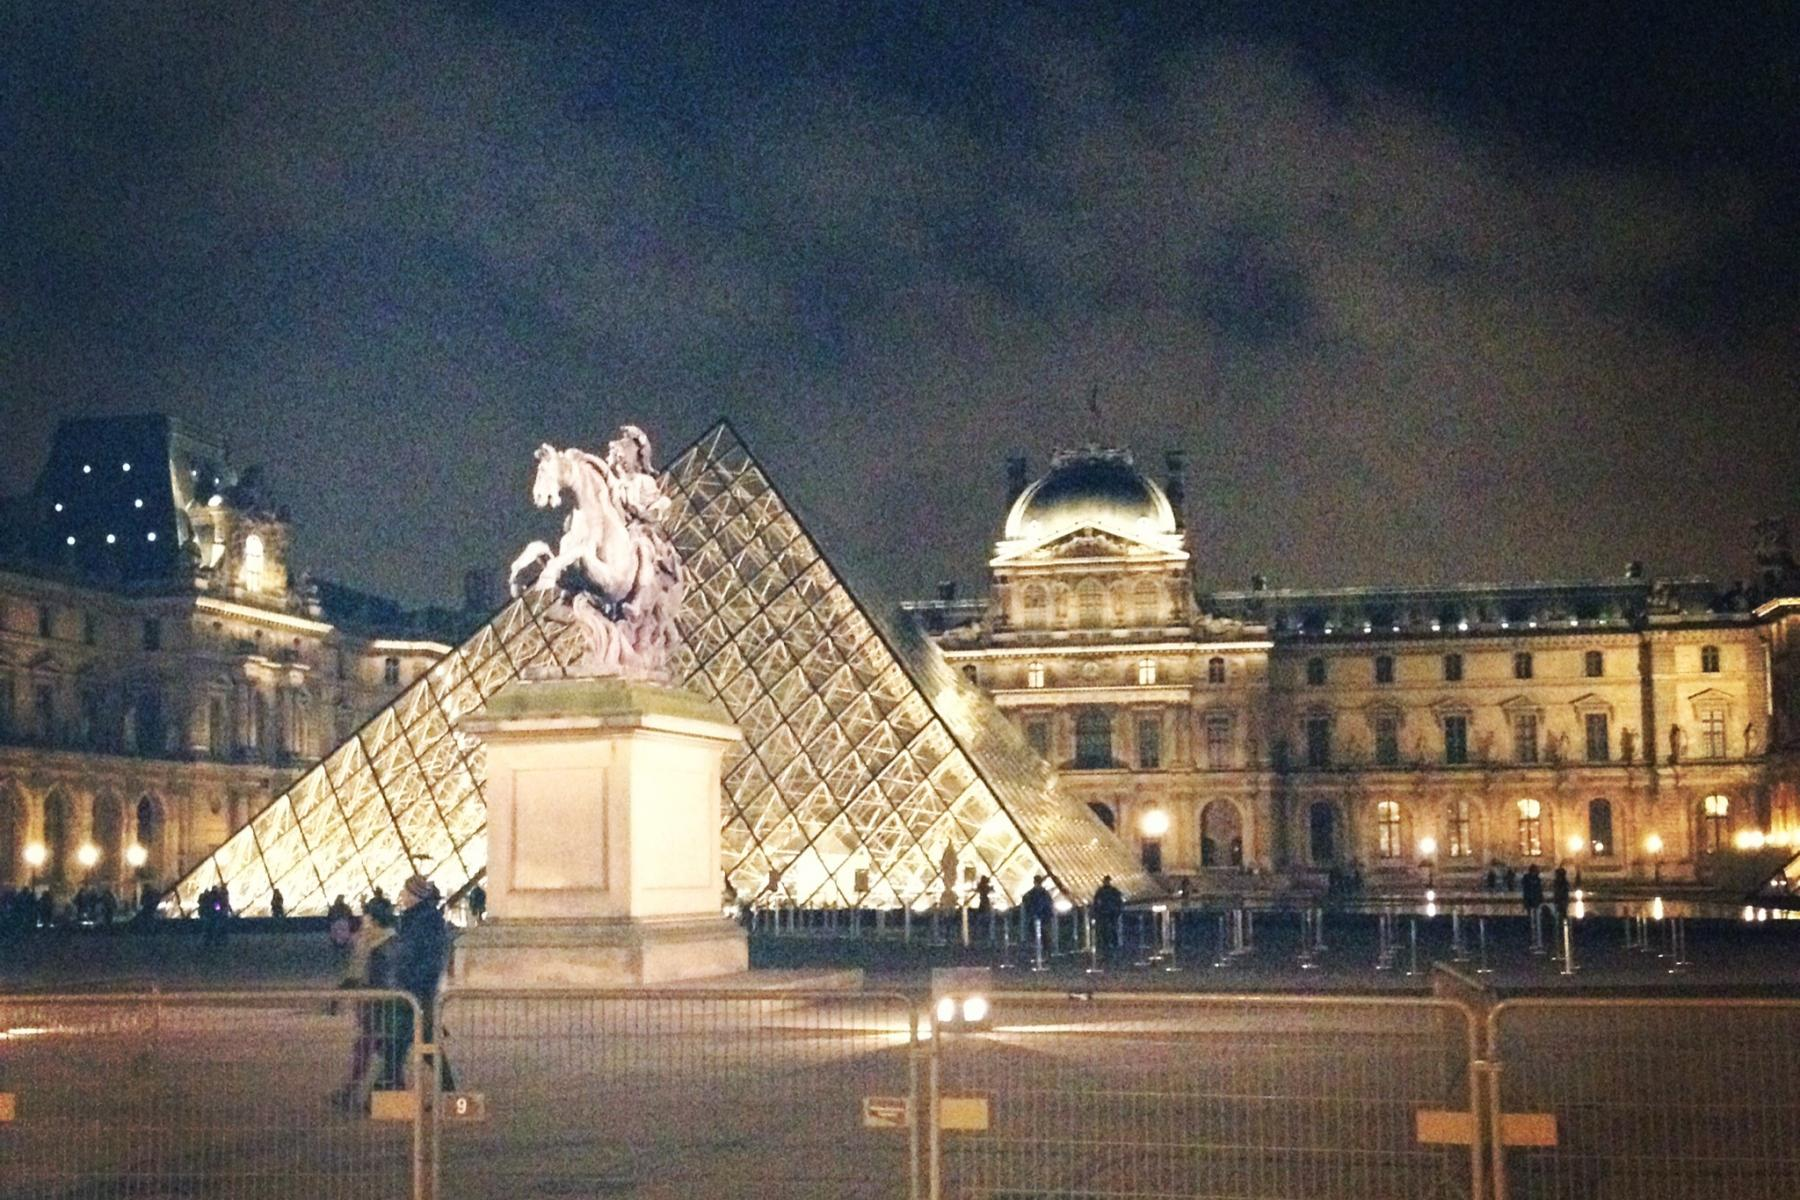 A beautiful image of the Louvre at night, with the I.M. Pei pyramid in front.